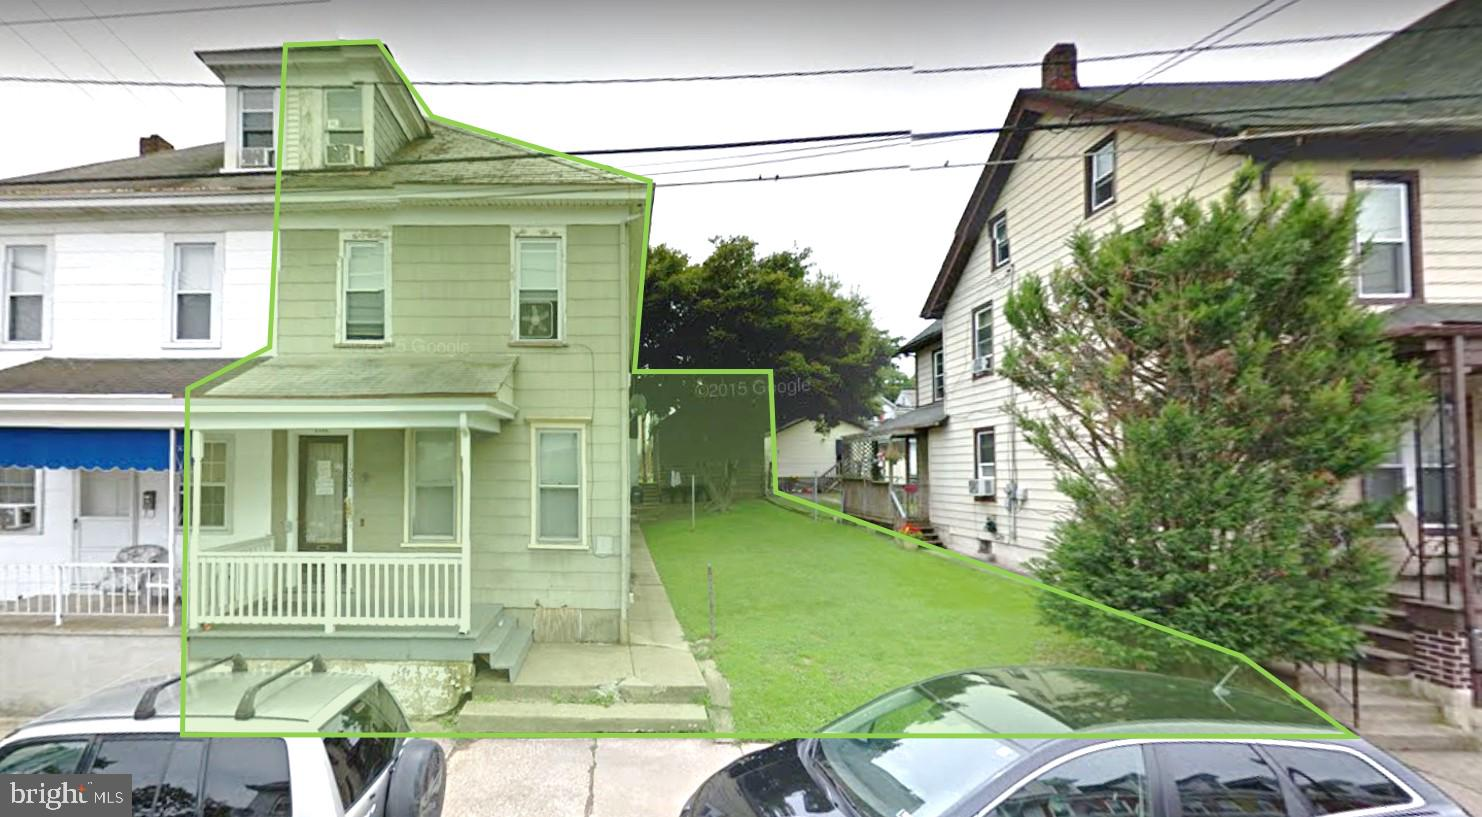 1502 LEHIGH STREET, EASTON, PA 18042